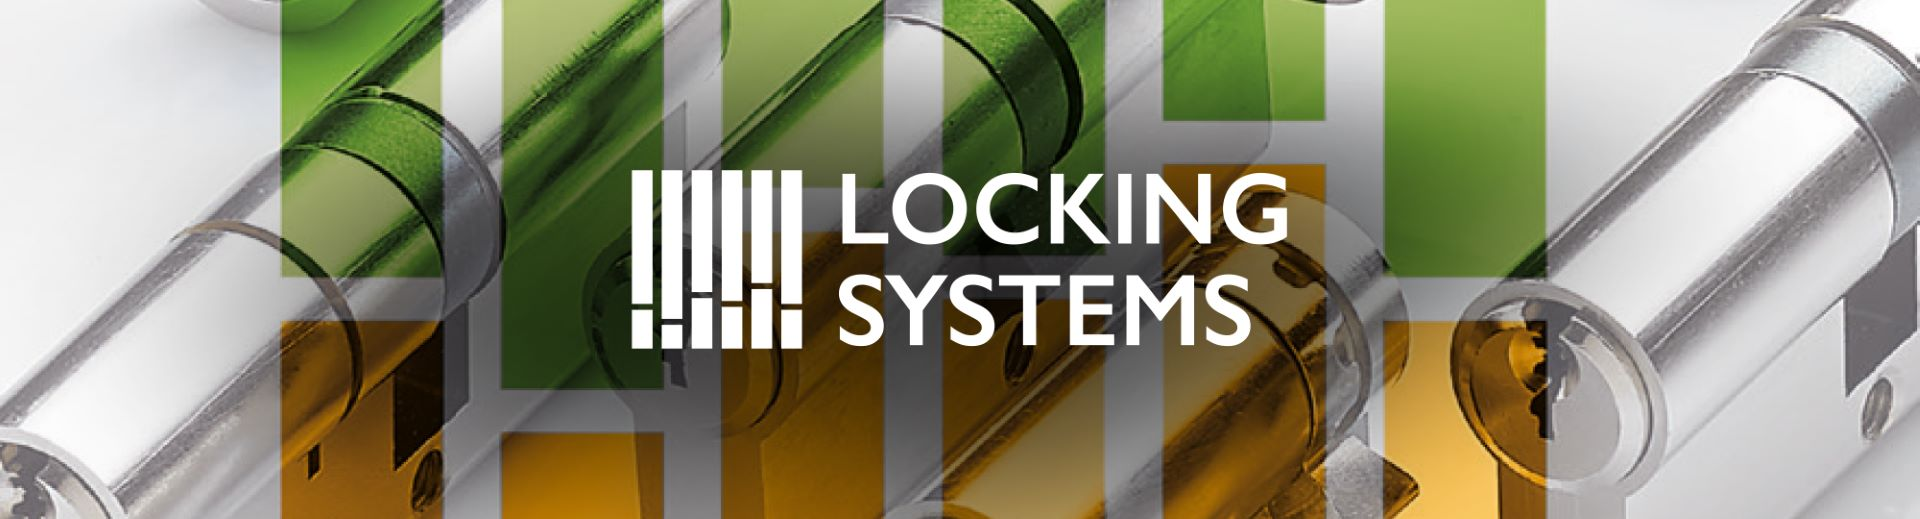 Padlocks by Locking Systems | UAP Ltd